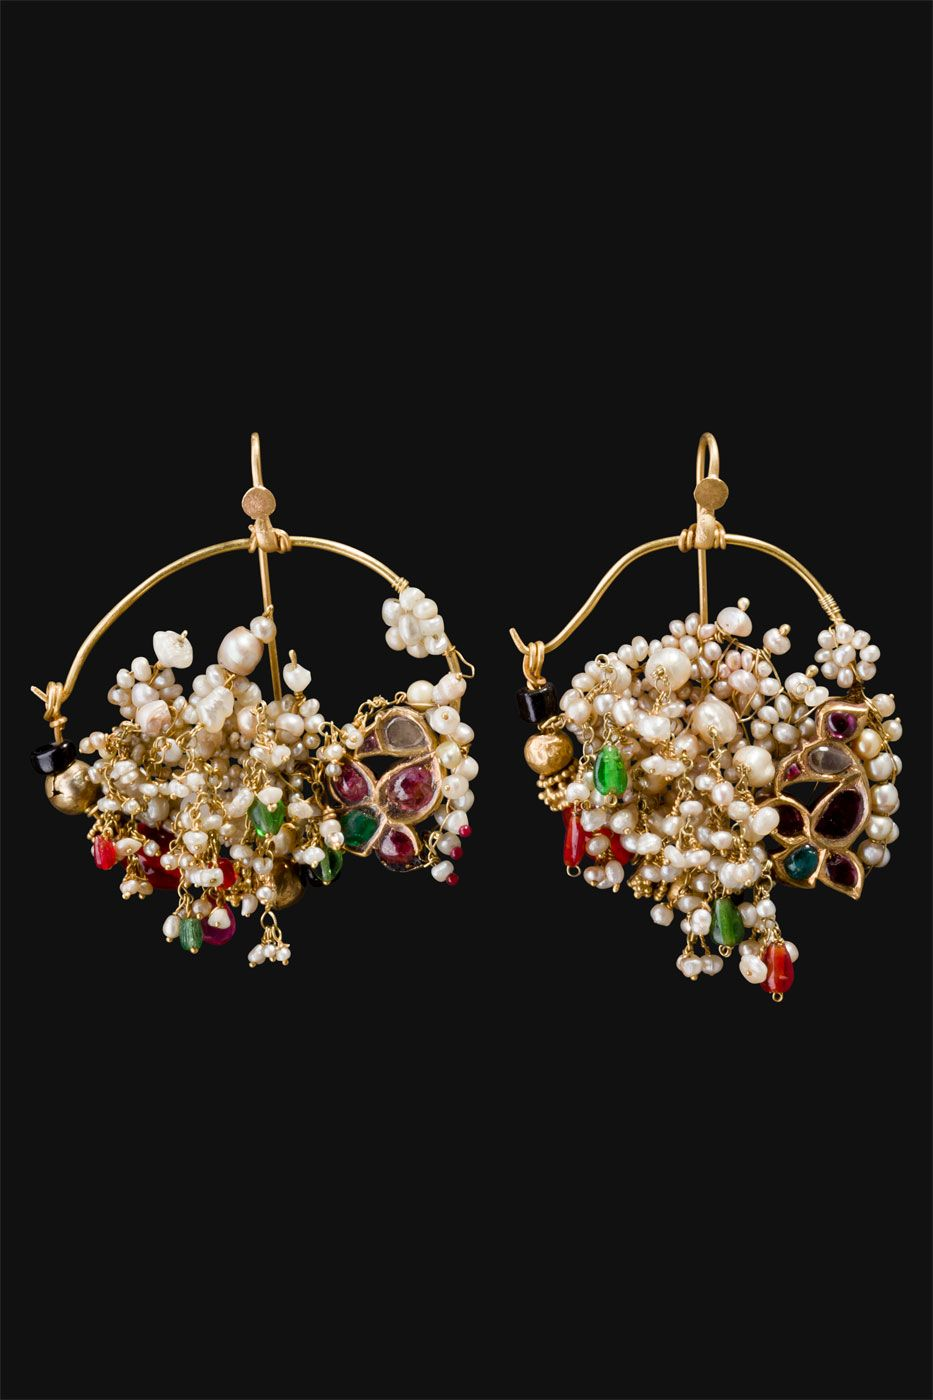 About nath nose ring mukku pudaka on pinterest jewellery gold nose - The Earrings Are Originally Nose Ornaments Called Nath They Are Spread All Over Northern Central India The Nath Are Usually Worn In The Left Nostril So